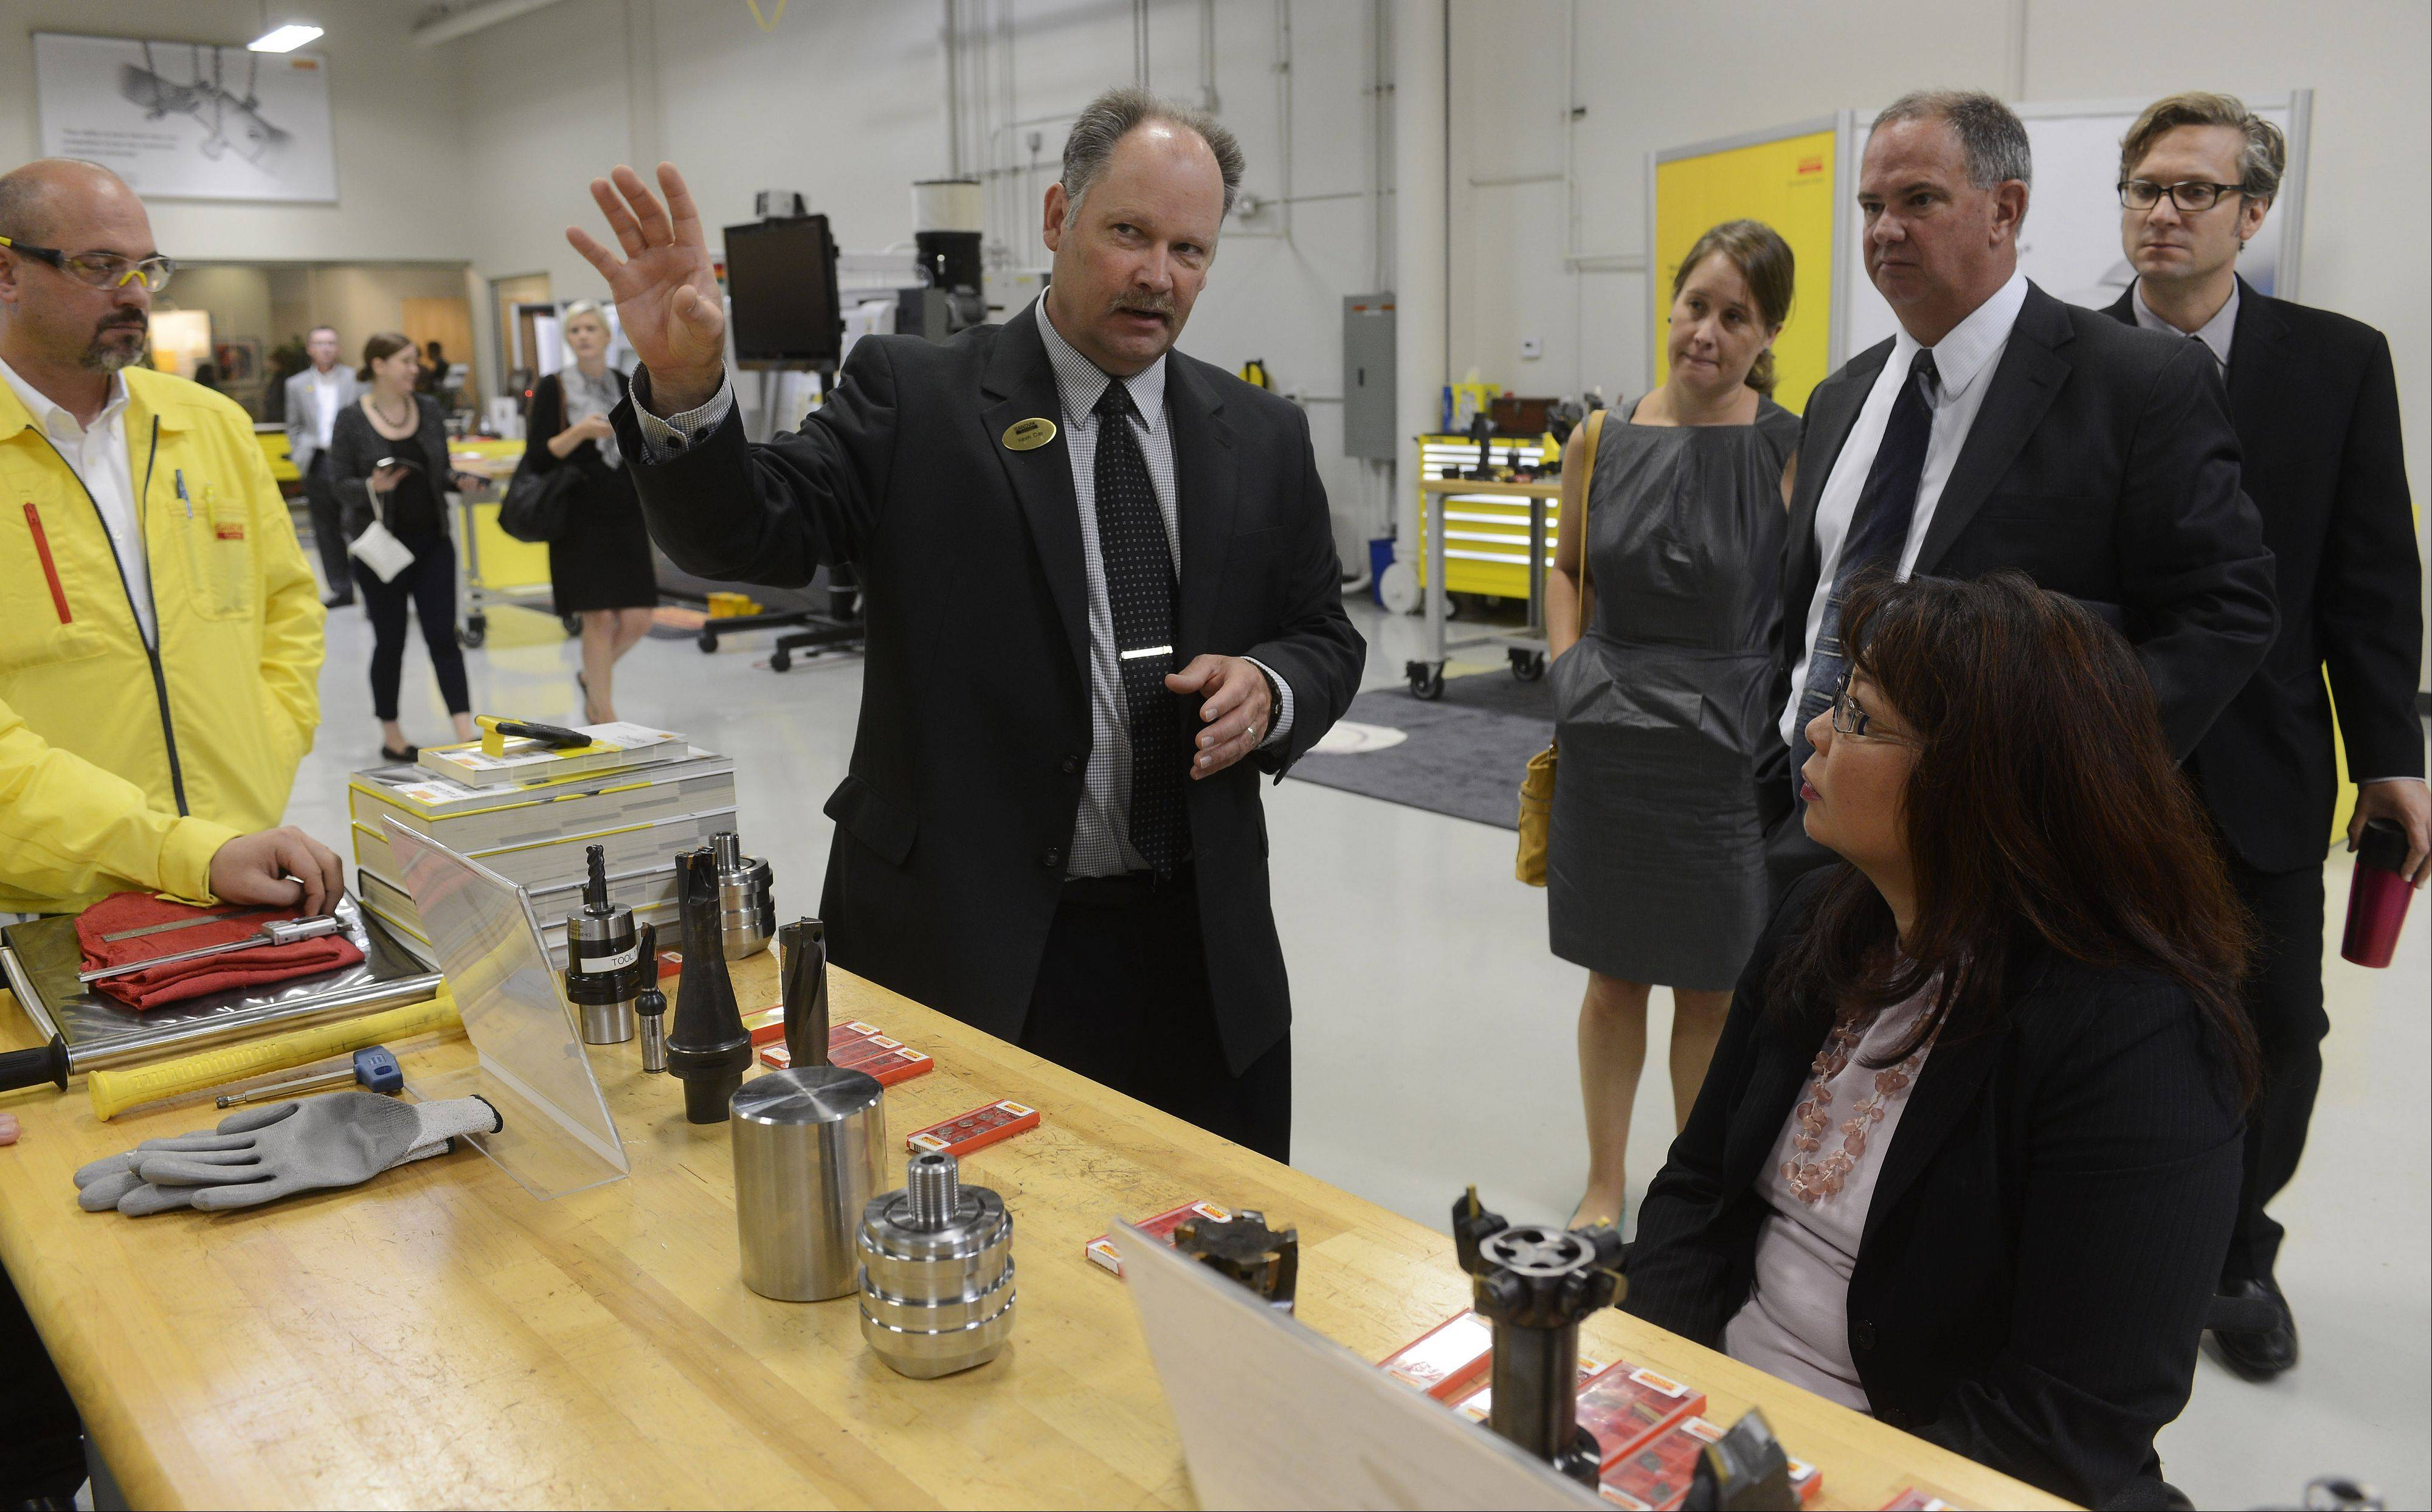 Kevin Clay, productivity center and training manager of Sandvik Coromant Co., Schaumburg, leads a tour which includes U.S. Rep. Tammy Duckworth, a Hoffman Estates Democrat, right, at the company's facility Friday. The company hosted a discussion on manufacturing and its importance to the region.